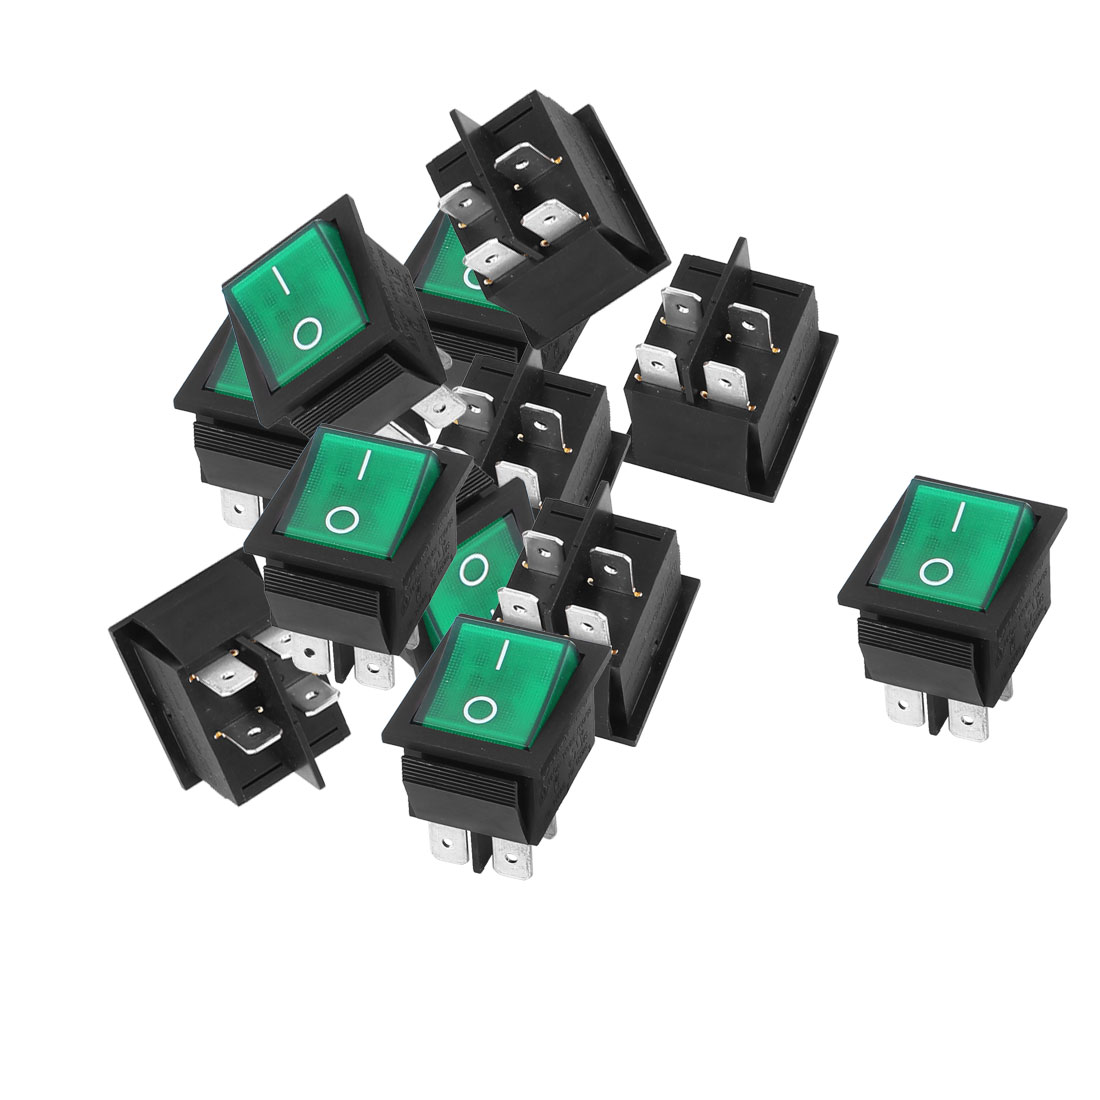 AC 125V/250V 16A 4 Terminal Green Light ON-OFF I/O SPST Boat Rocker Switch 12 Pcs